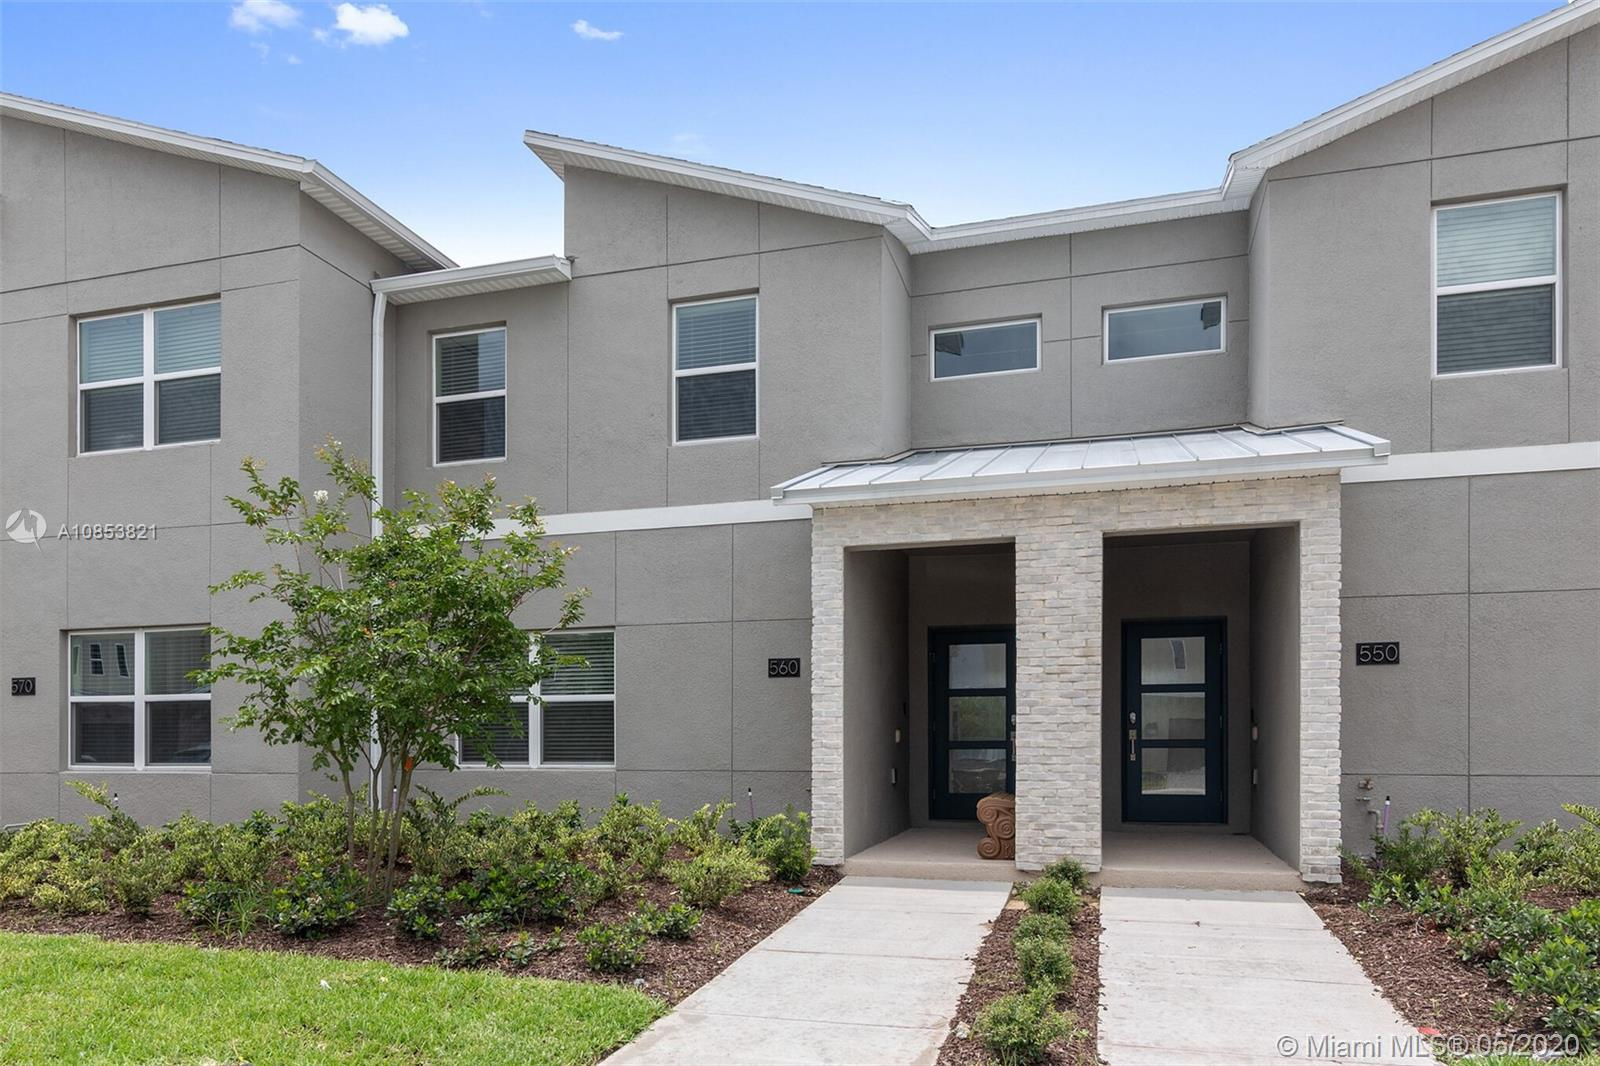 Details for 560 Pebble Beach Dr  560, Other City In The State, FL 33896